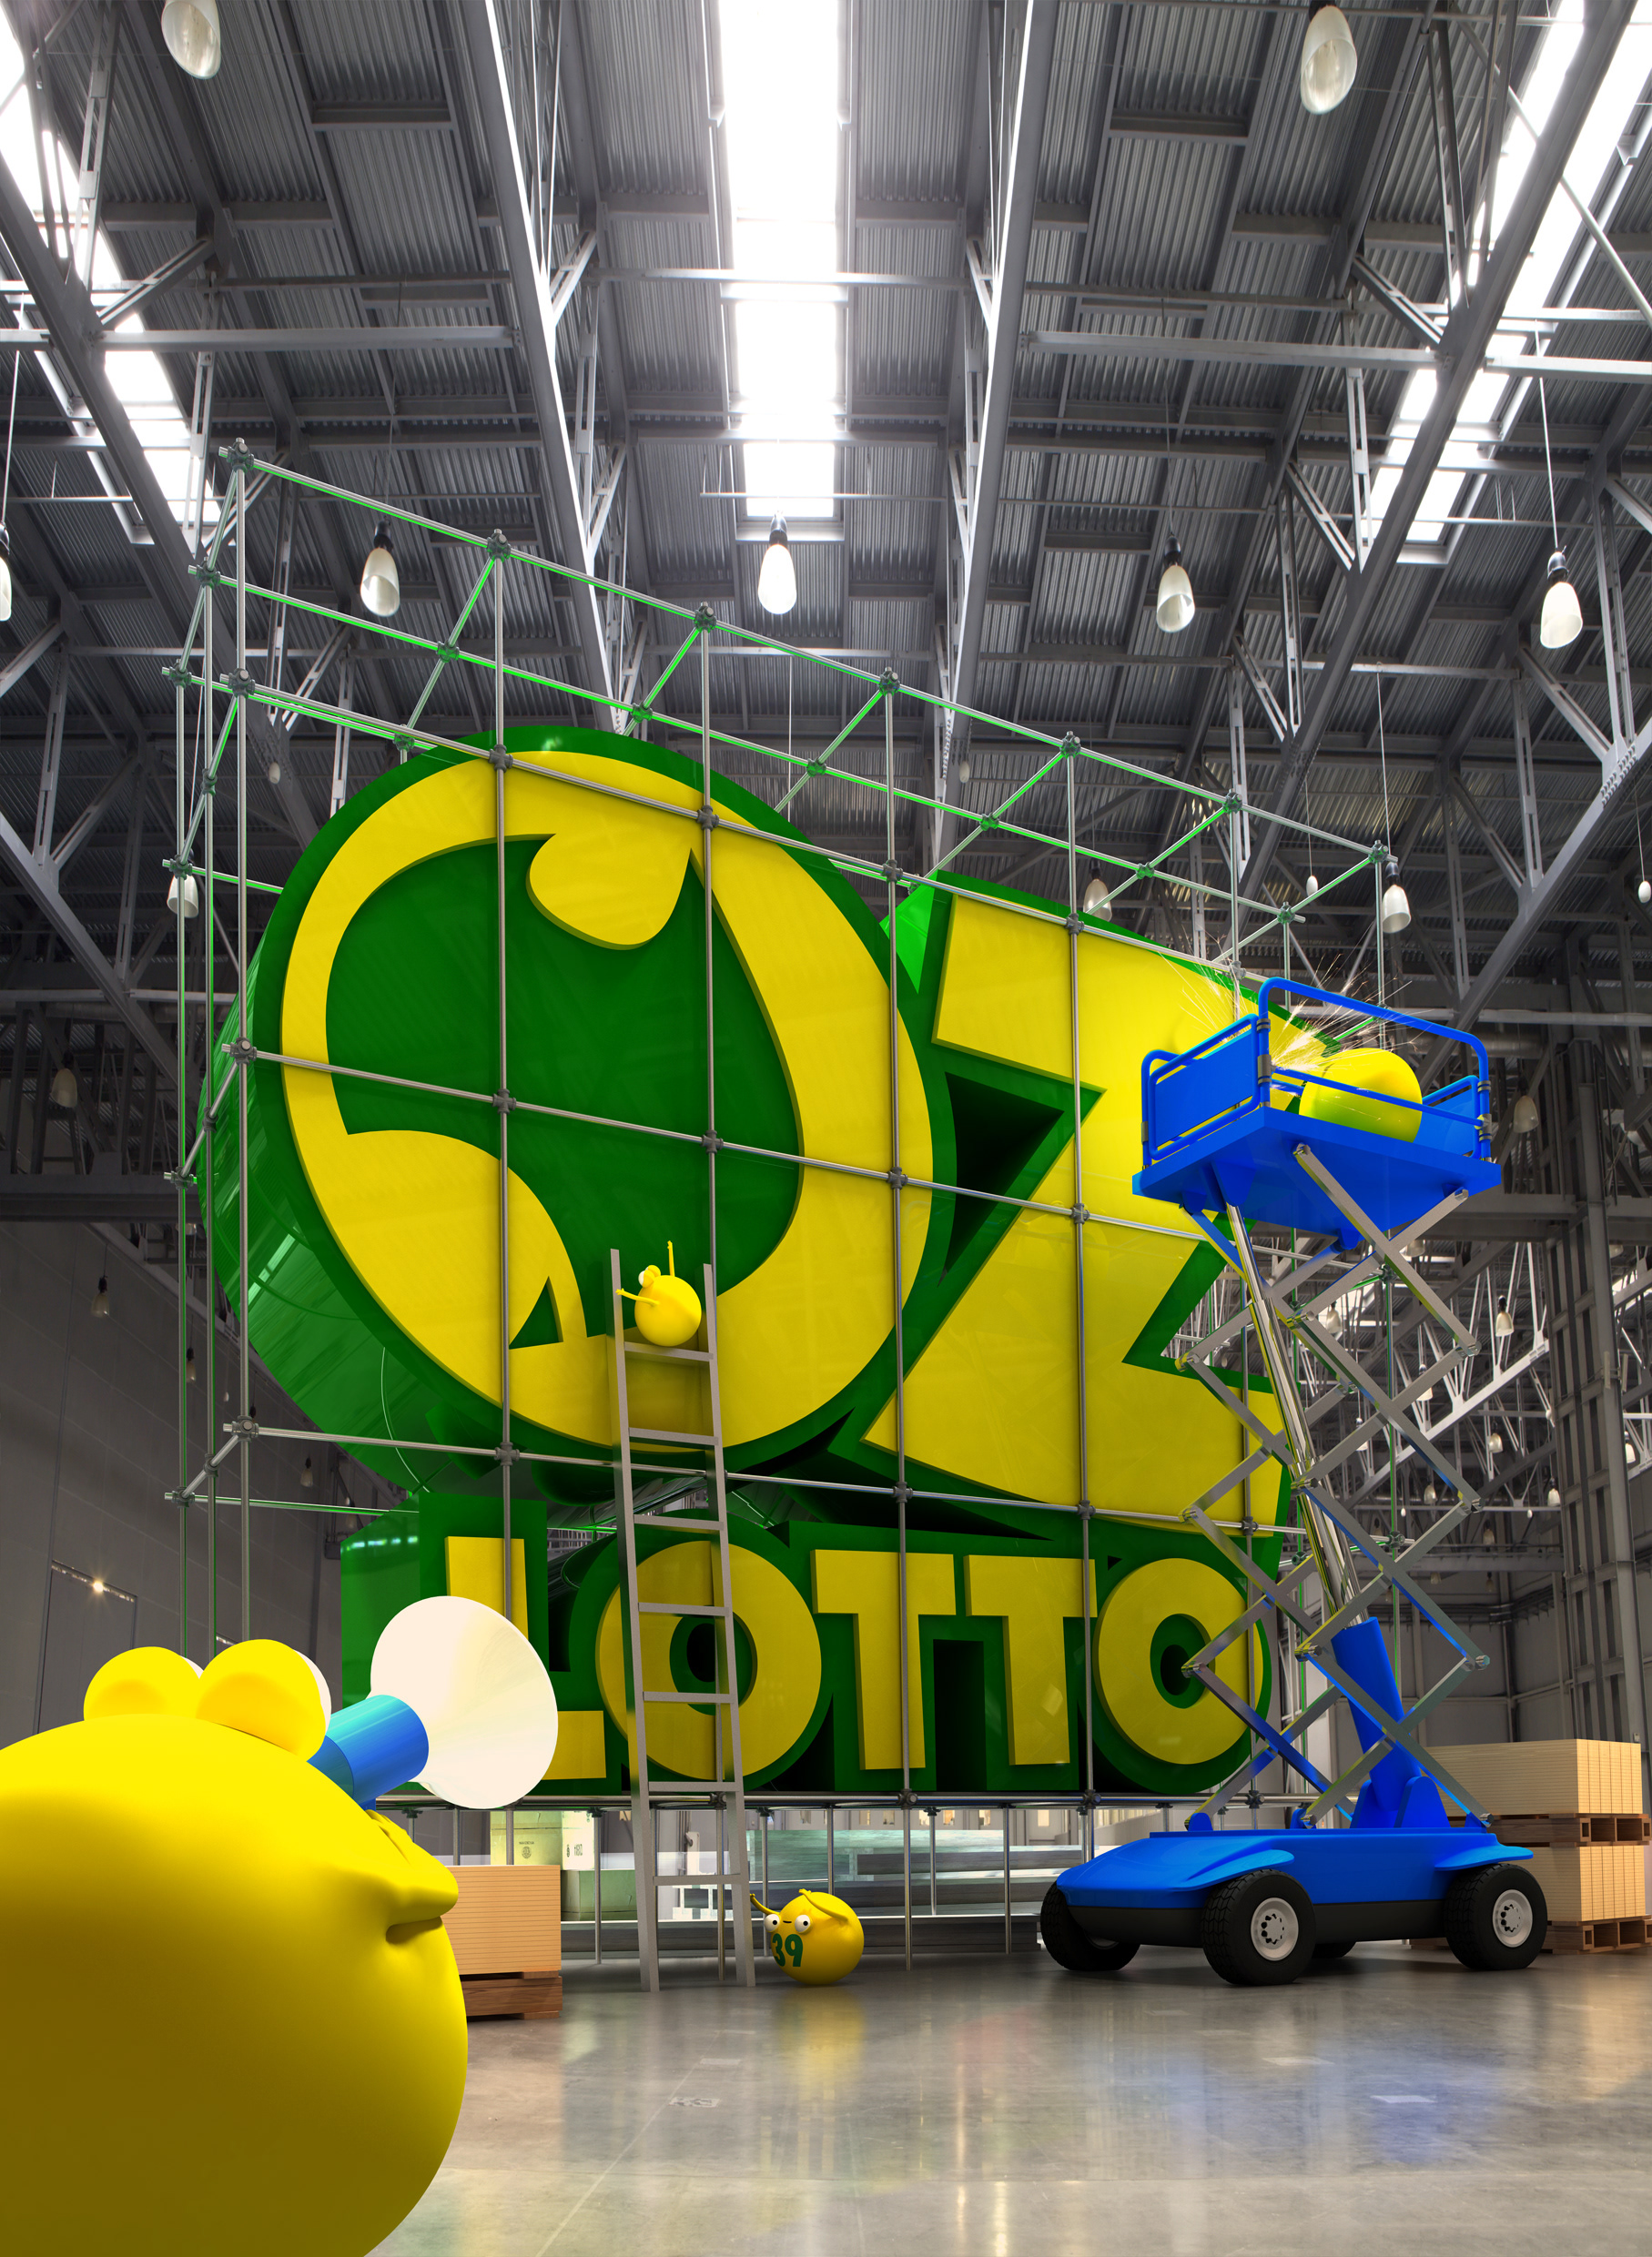 Oz Lotto Games